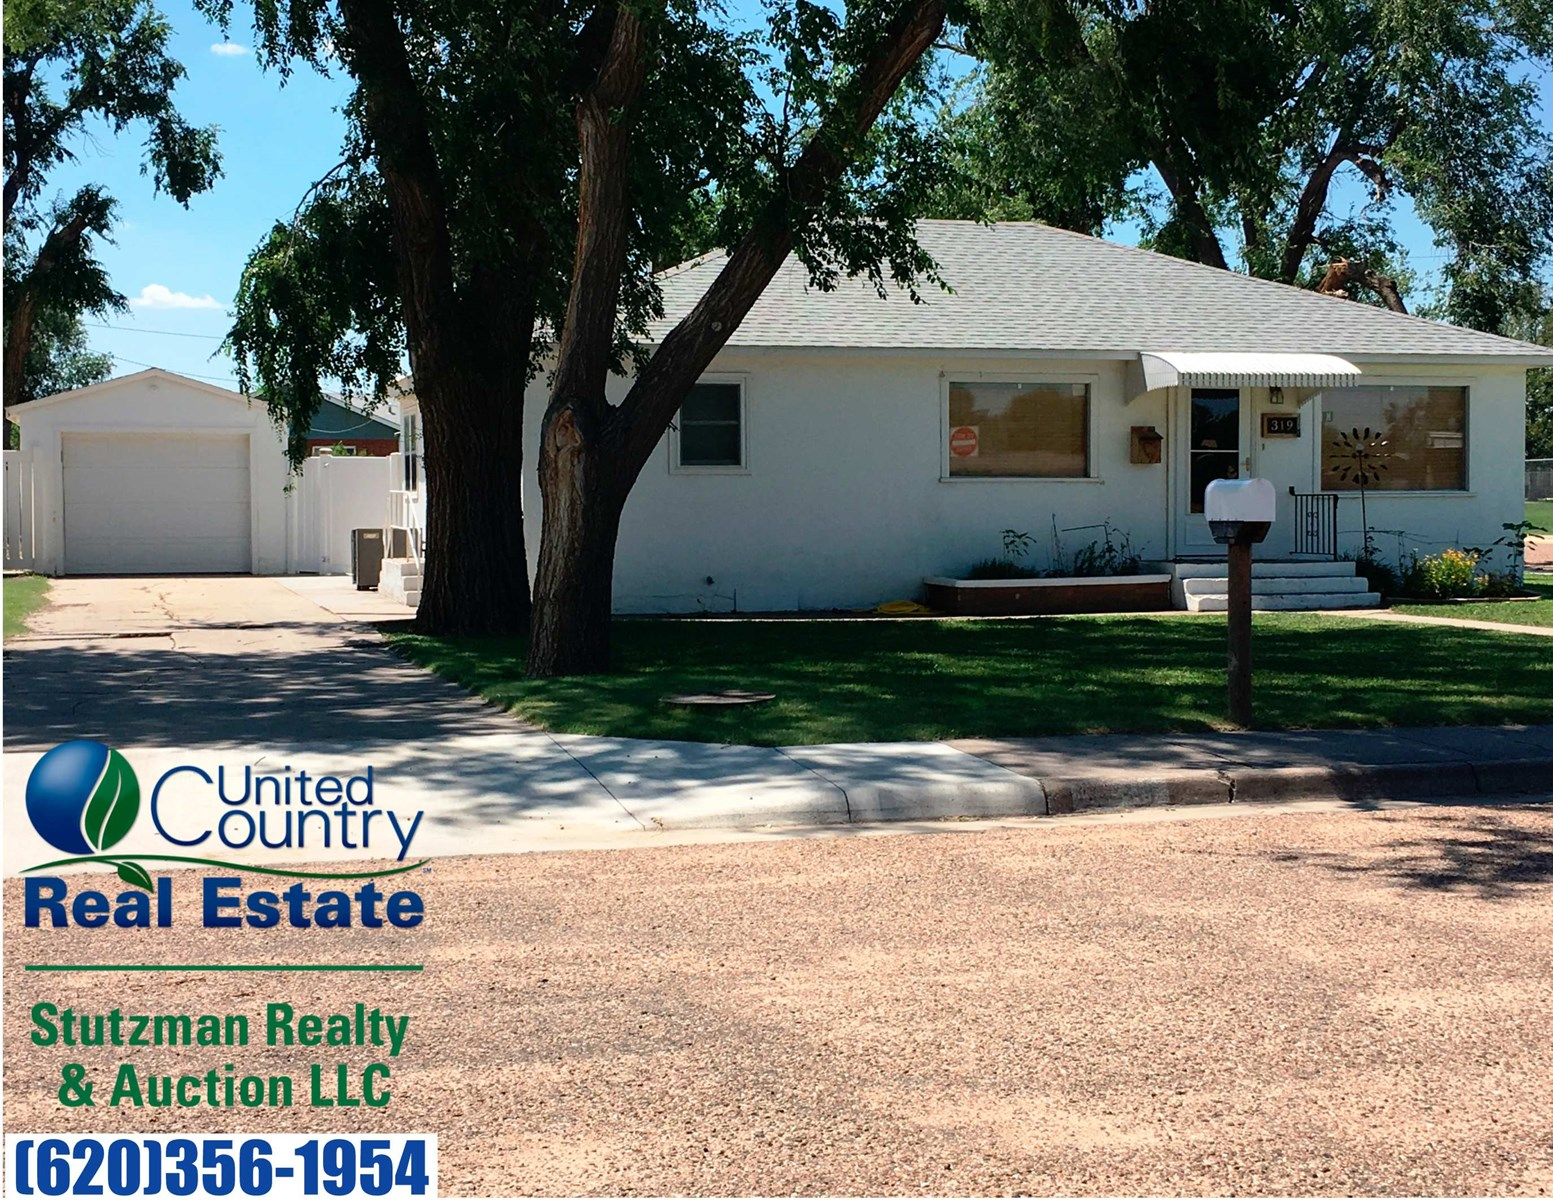 UPDATED AND REMODELED HOME FOR SALE IN ULYSSES, KS